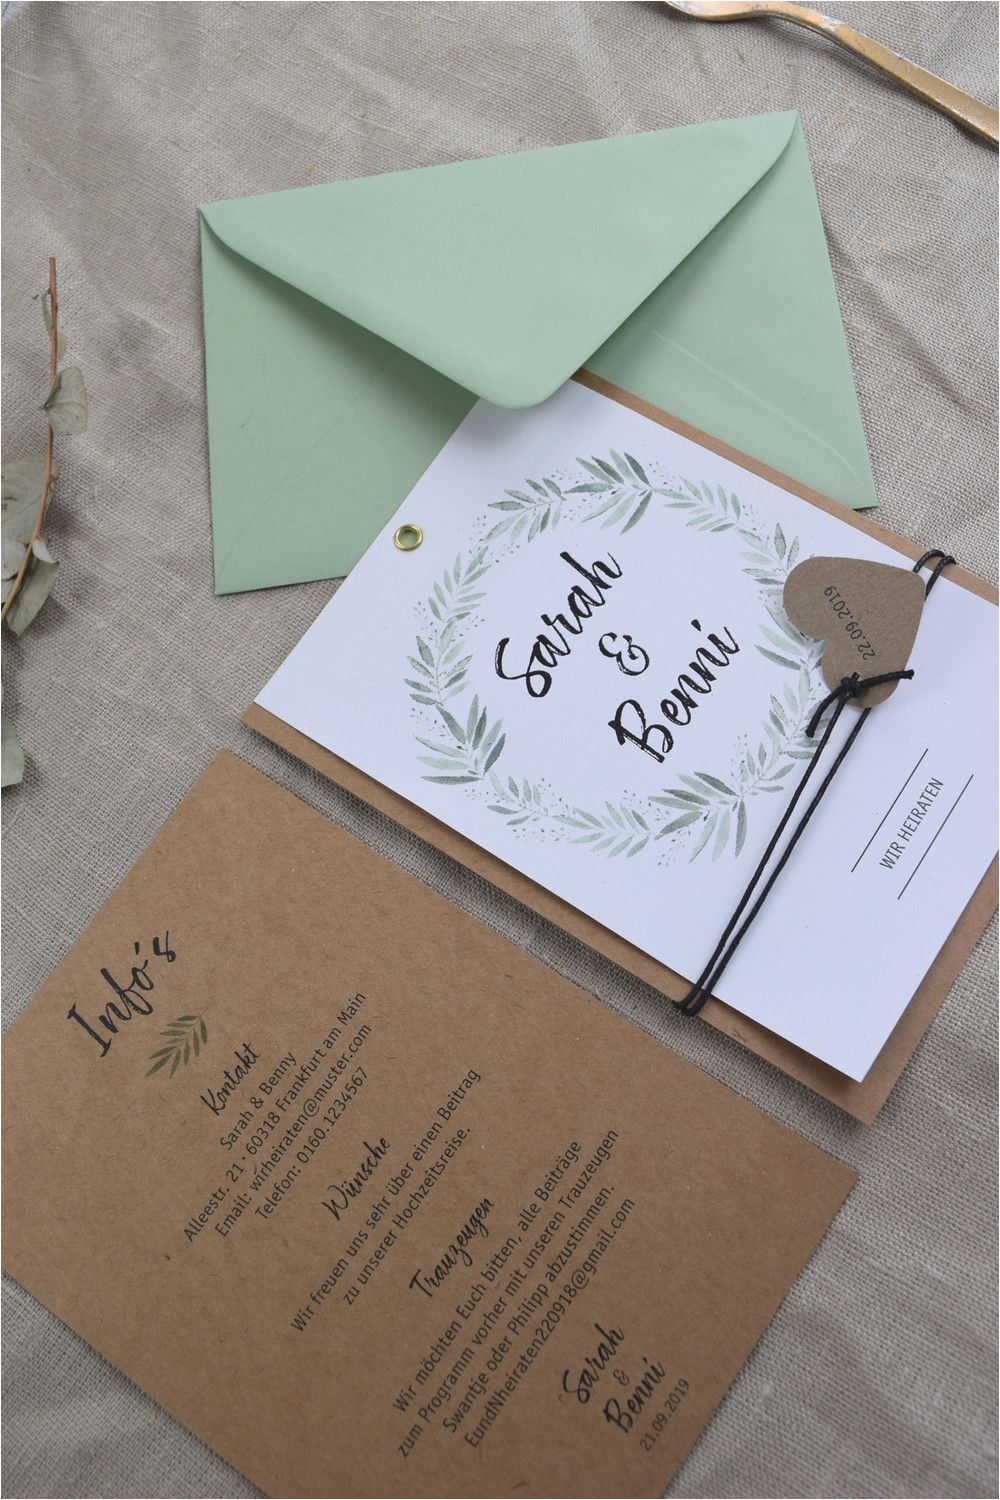 Ideas for Wedding Card Invitation Invitation Cards Modern Vintage Card Blooming Wedding